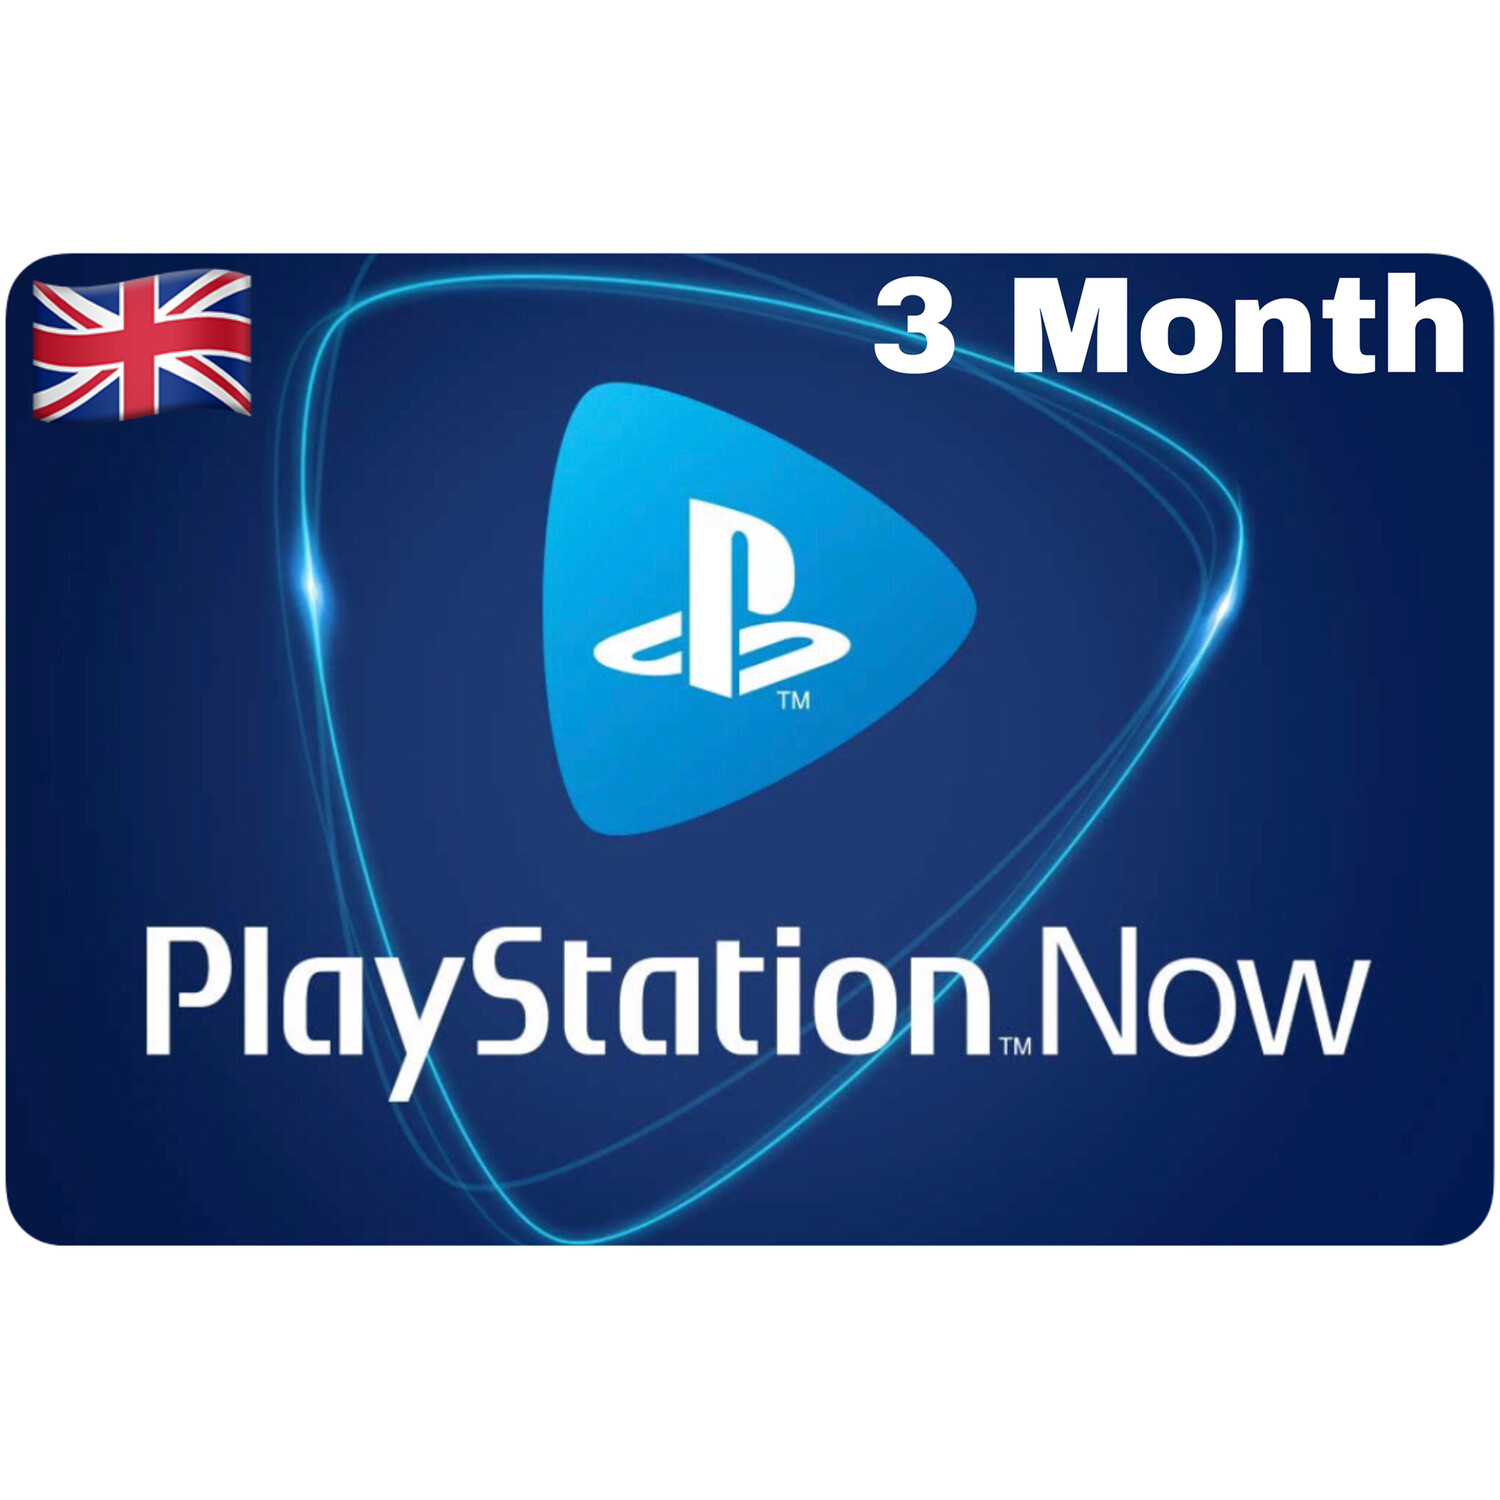 Playstation Now UK 3 Month Subscription